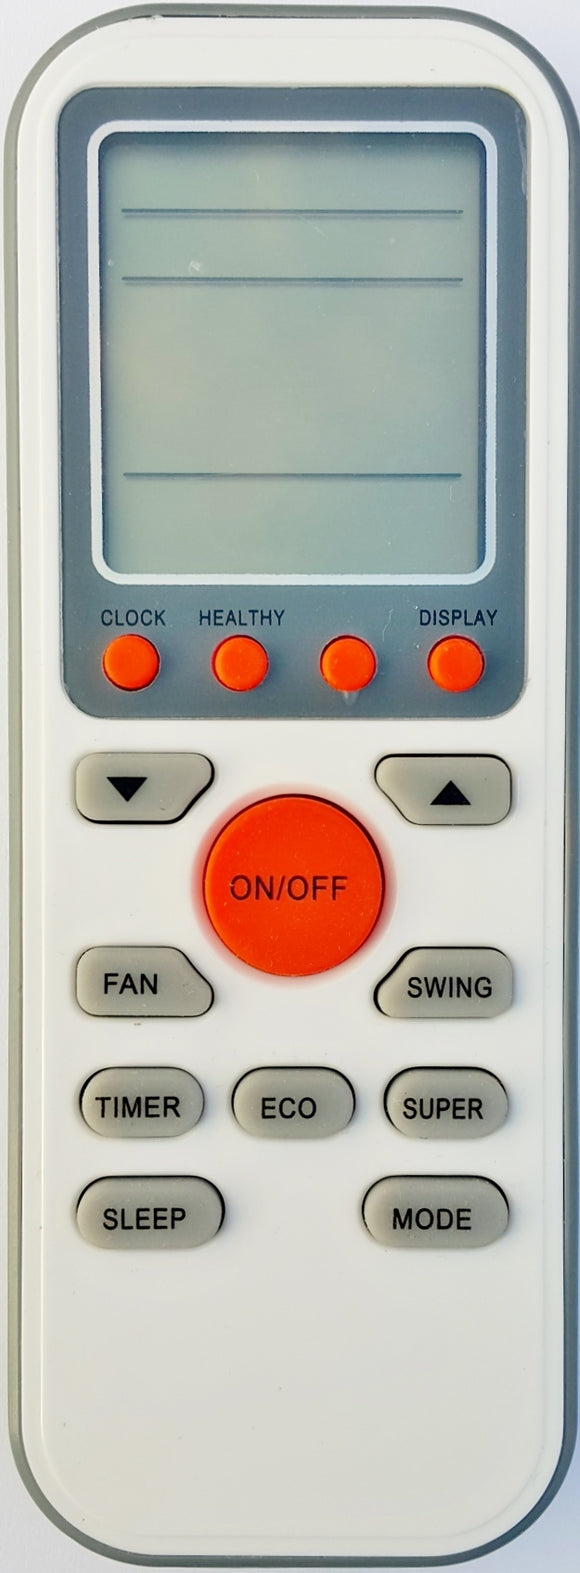 ORIGINAL AIRMASTER AIR CONDITIONER REMOTE CONTROL - A7HR410 A24HR410 AOS07HR10 AOS24HR10 - Remote Control Warehouse